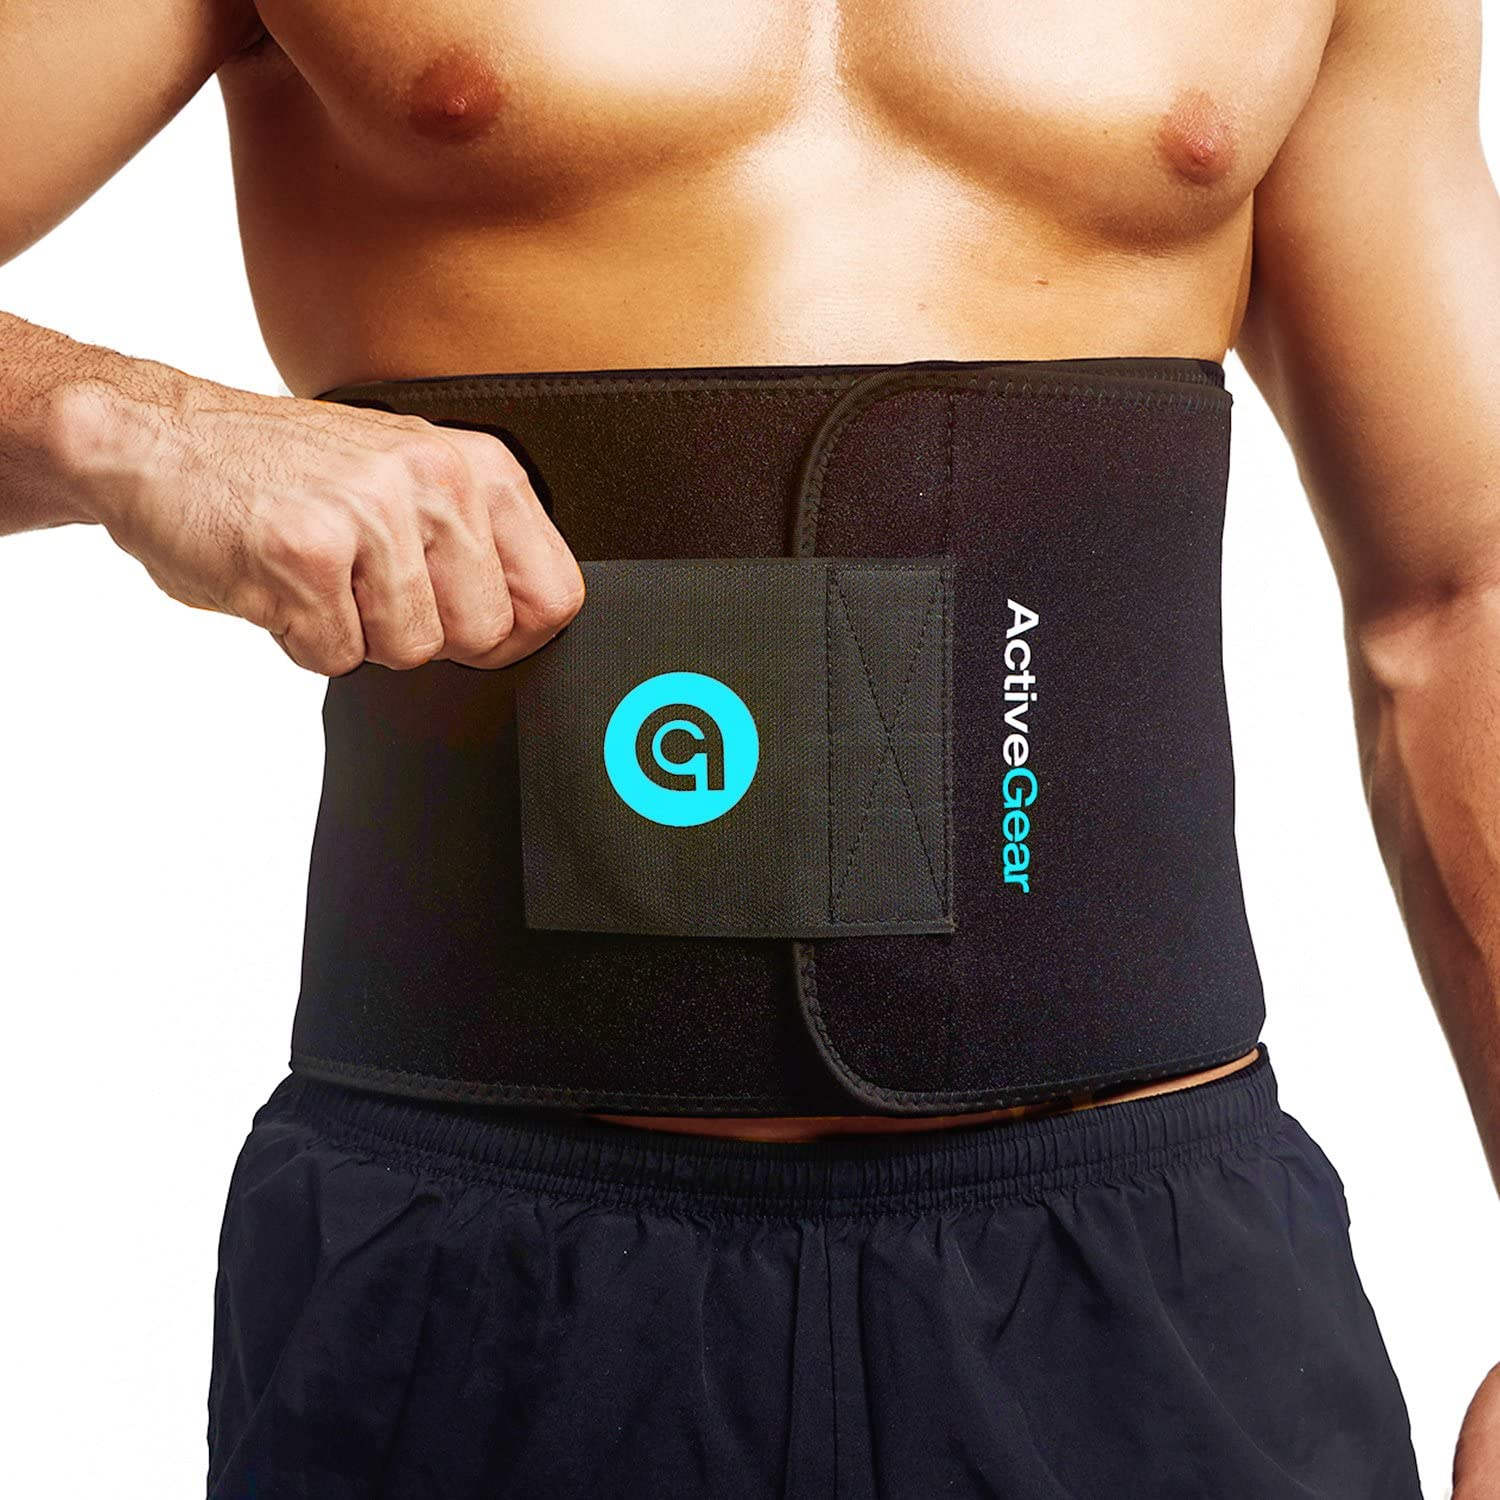 AG ACTIVE GEAR Waist Trimmer